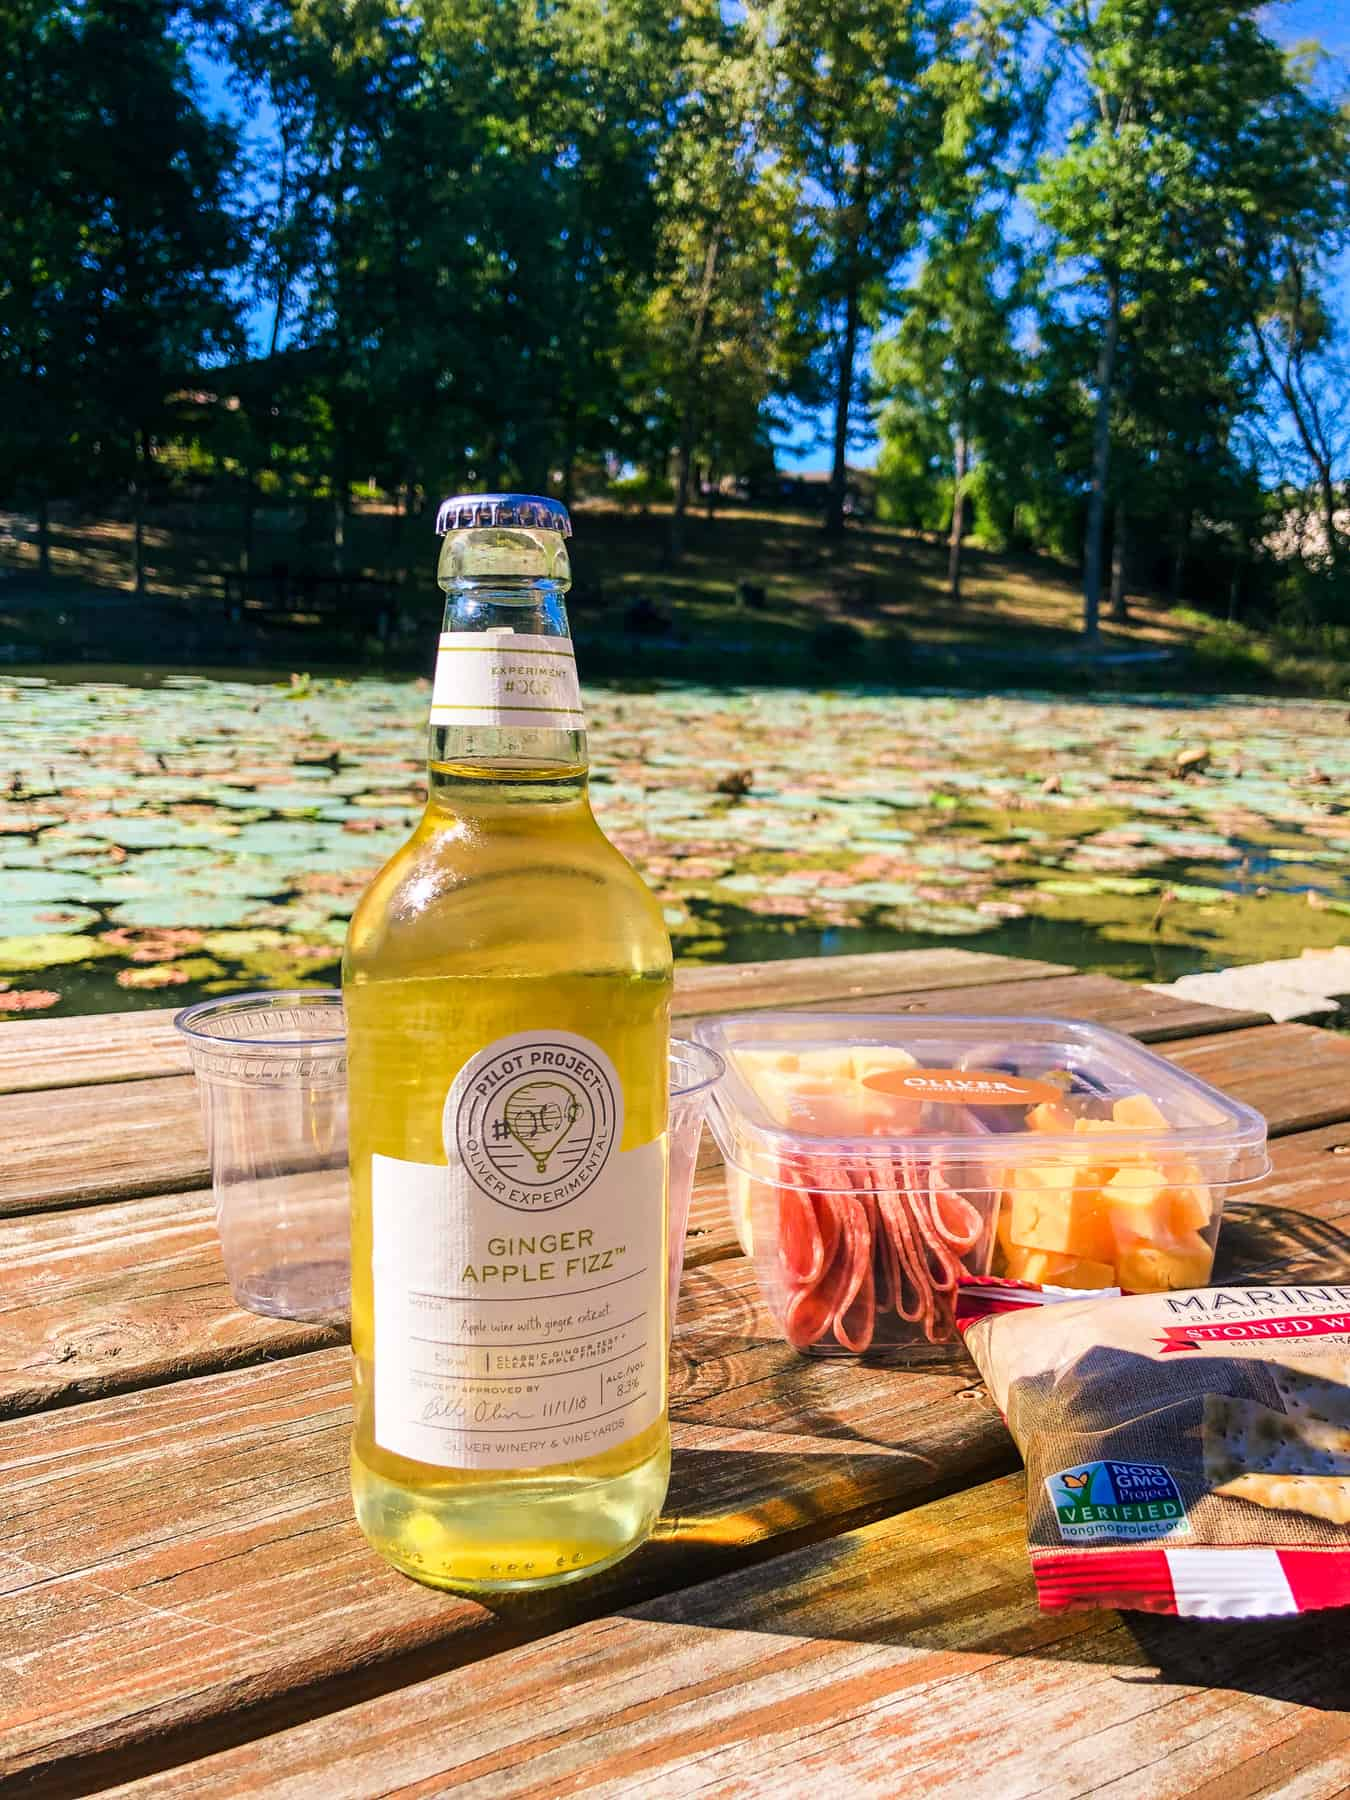 A clear bottle of Ginger Apple Fizz from Oliver Winery sits on a picnic table in front of a pond covered in lily pads.